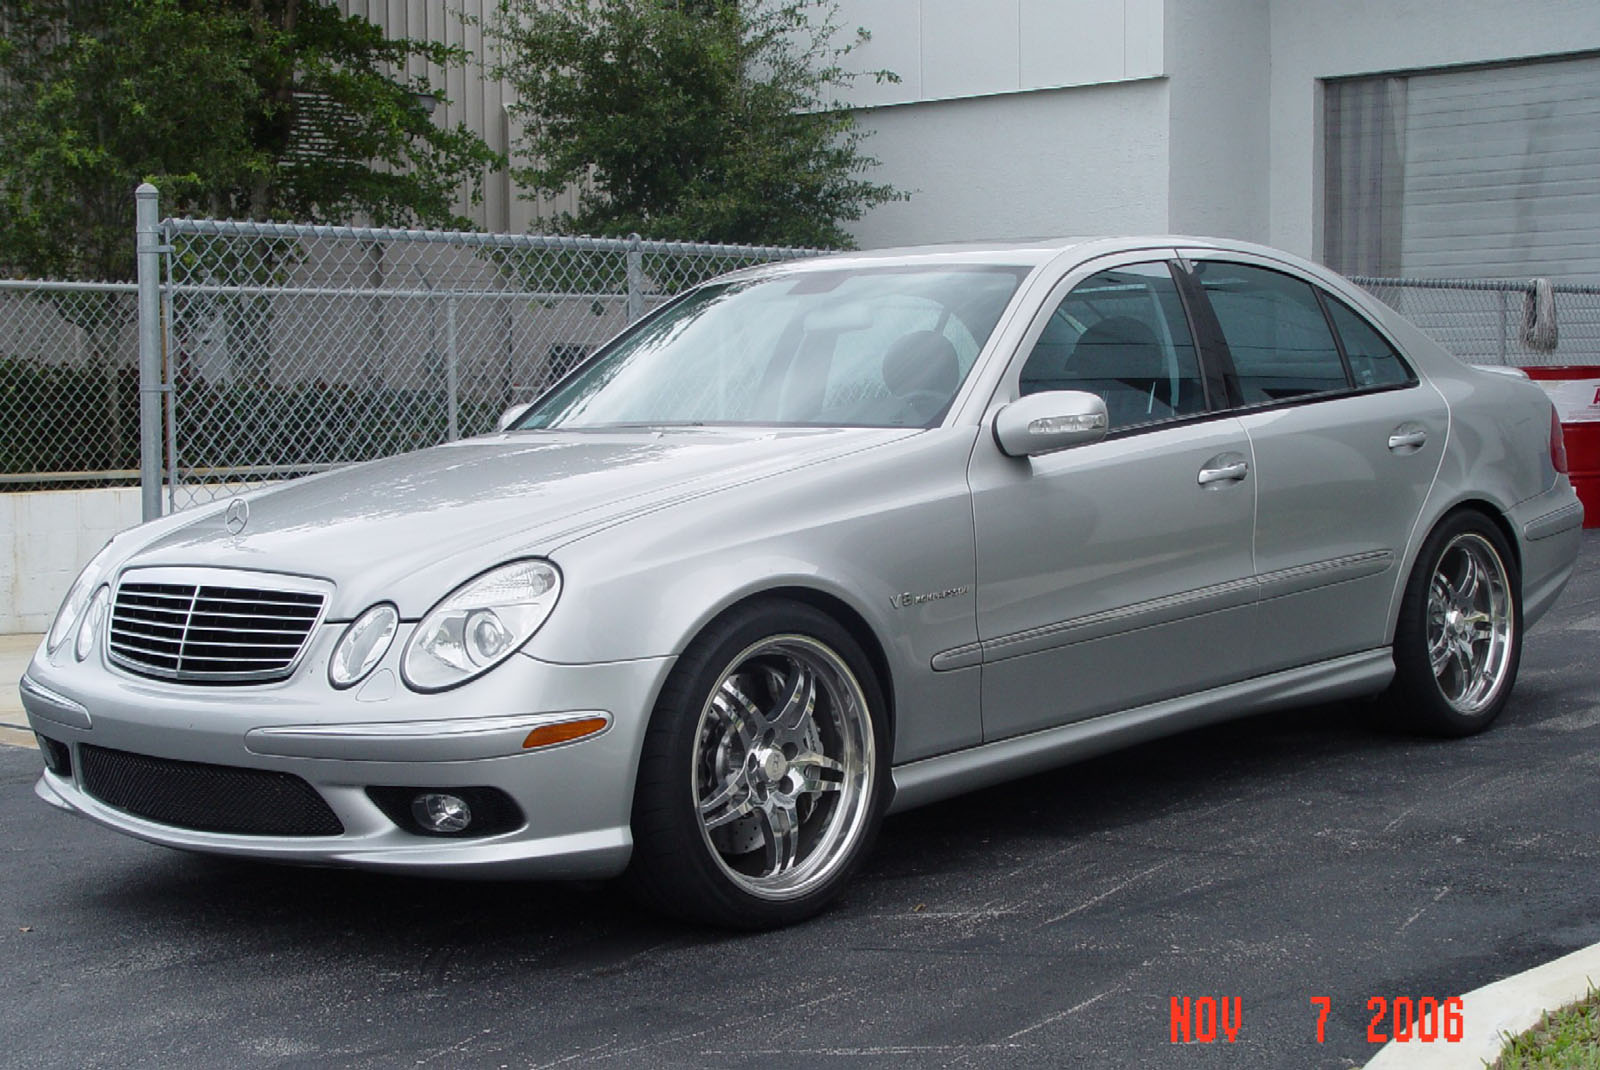 2004 mercedes benz e55 amg kleeman pictures mods for Amg com mercedes benz